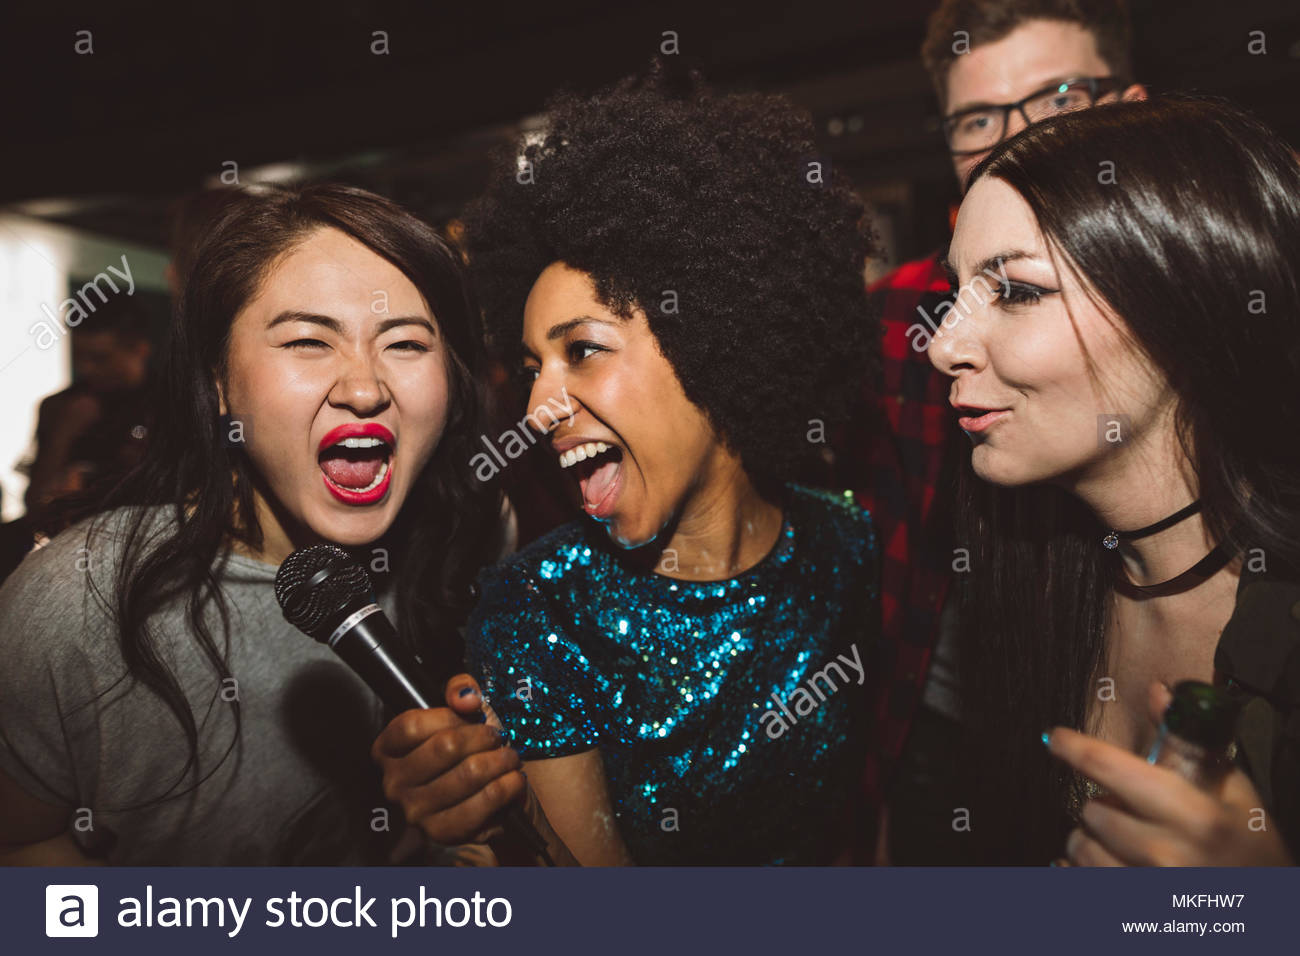 Playful, exuberant young female millennial friends singing karaoke - Stock Image